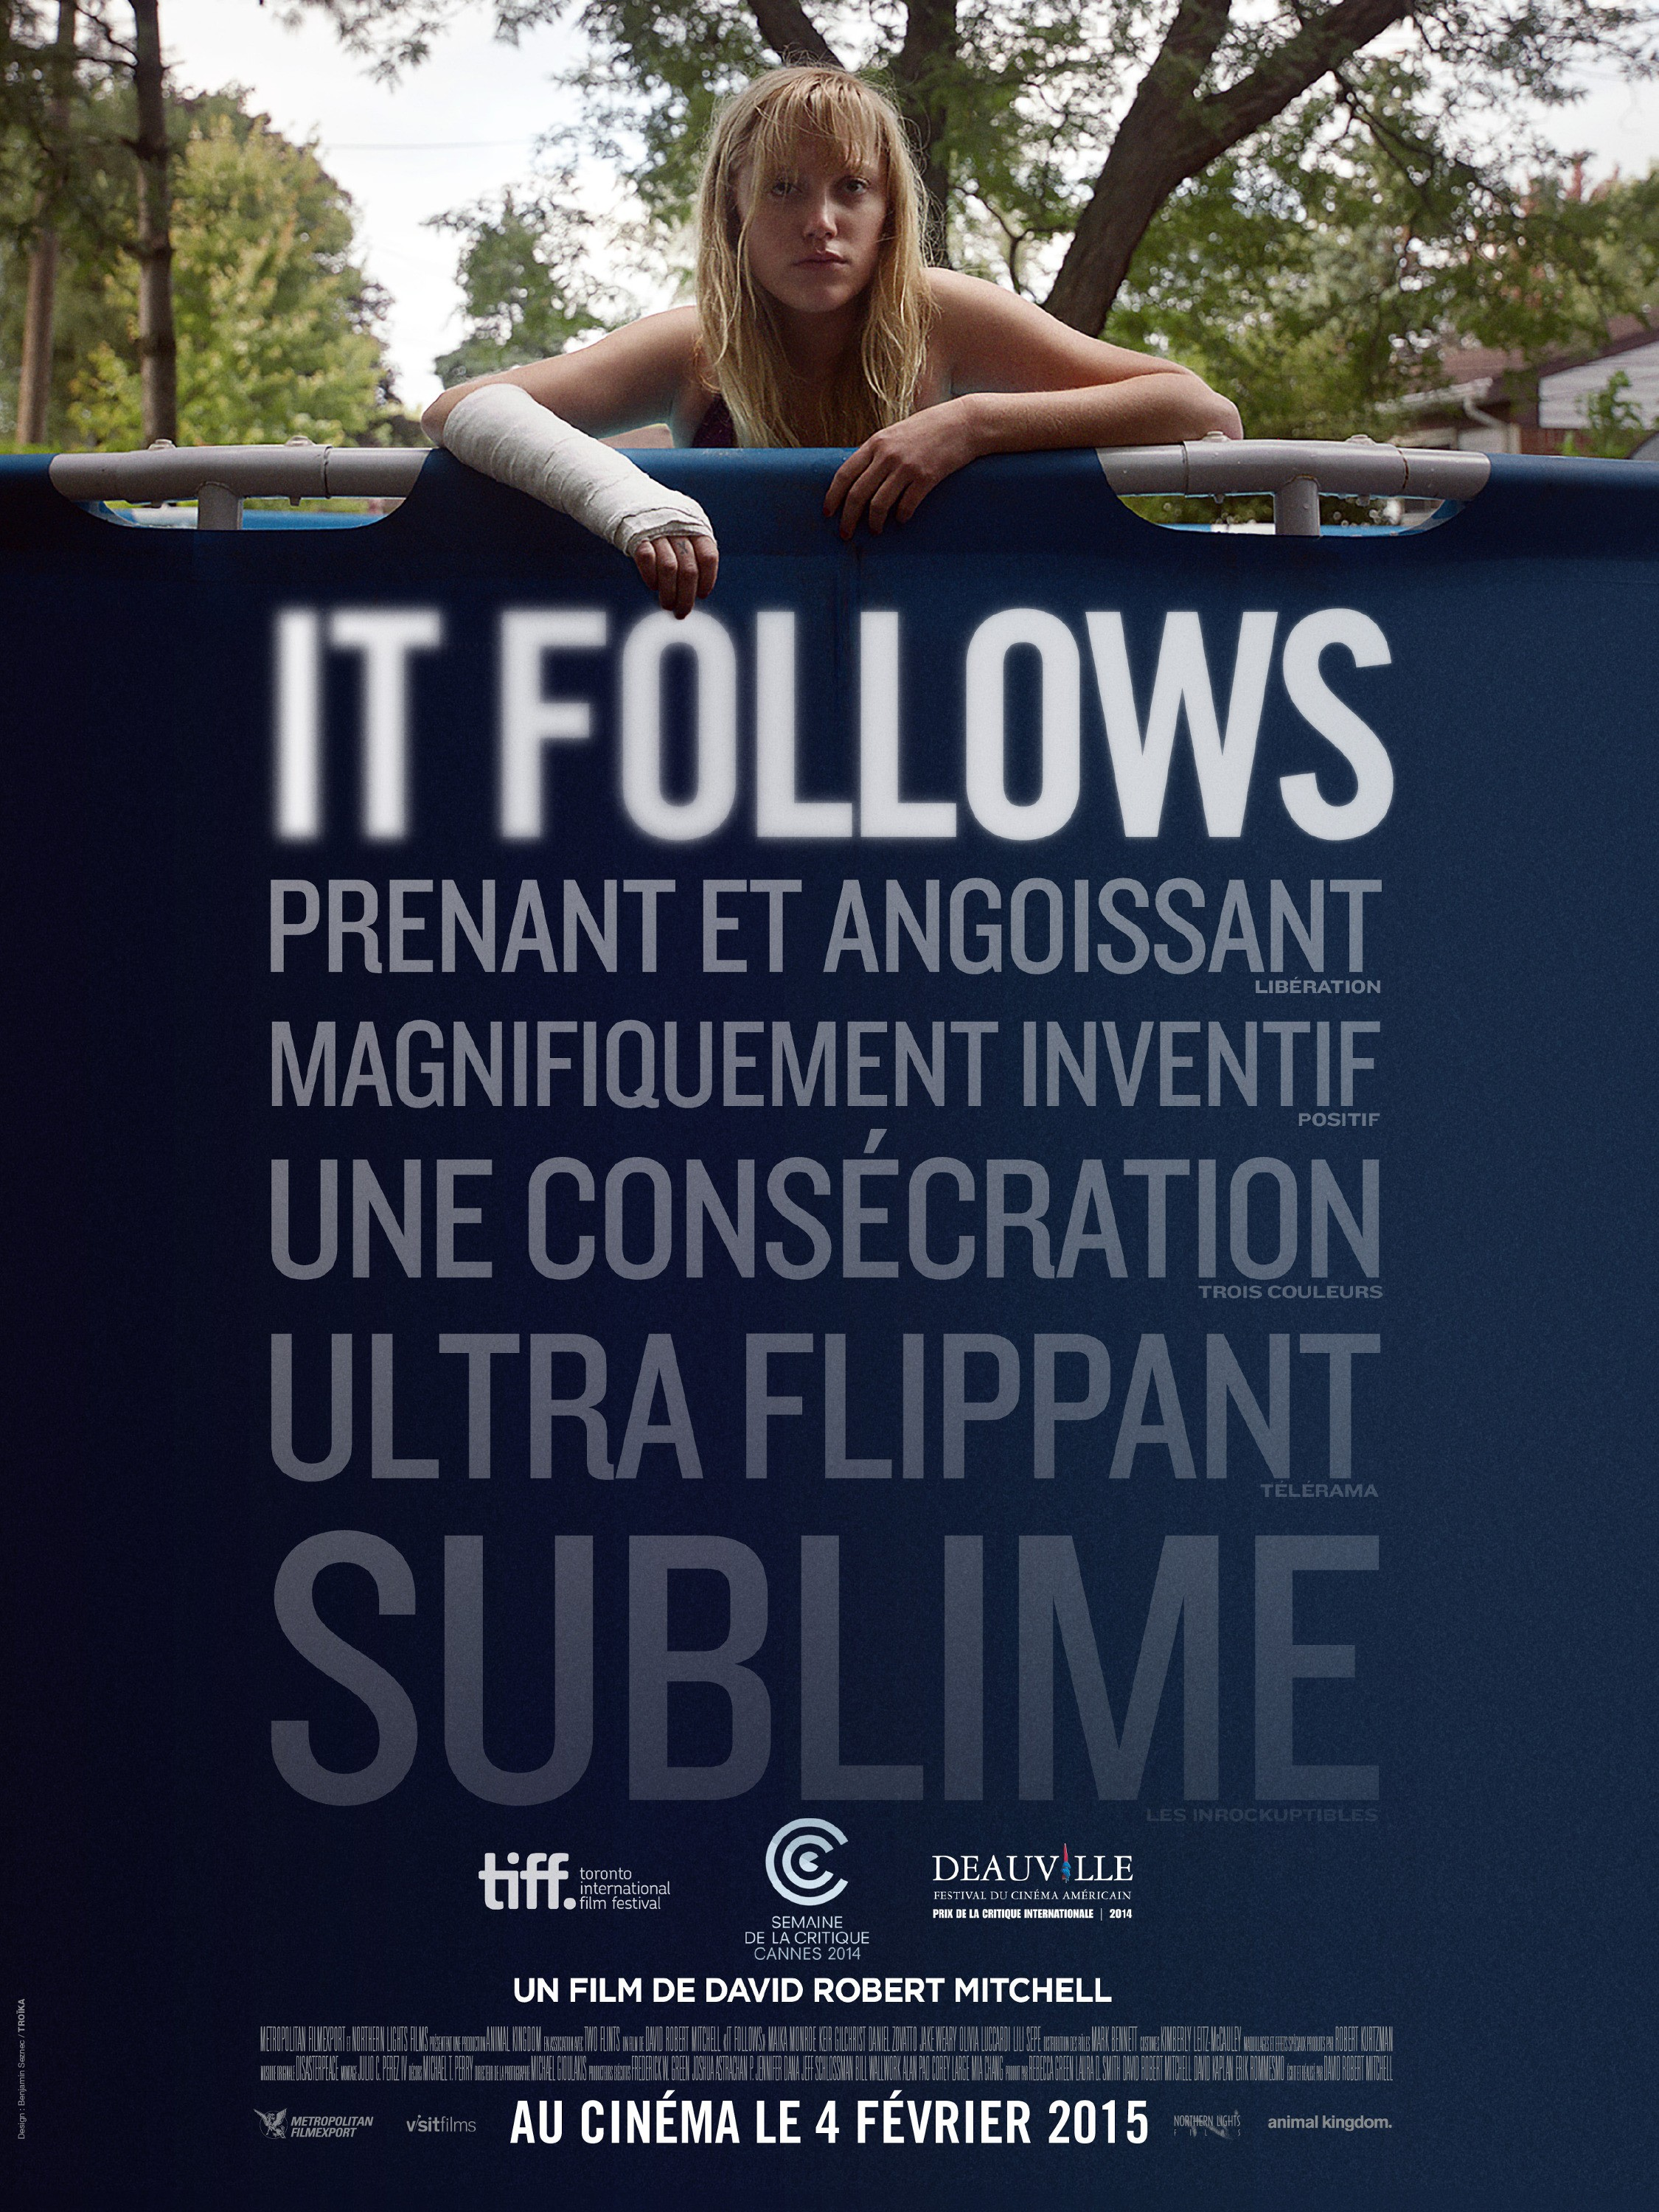 It Follows-POSTER XXLG-21JANEIRO2014-03